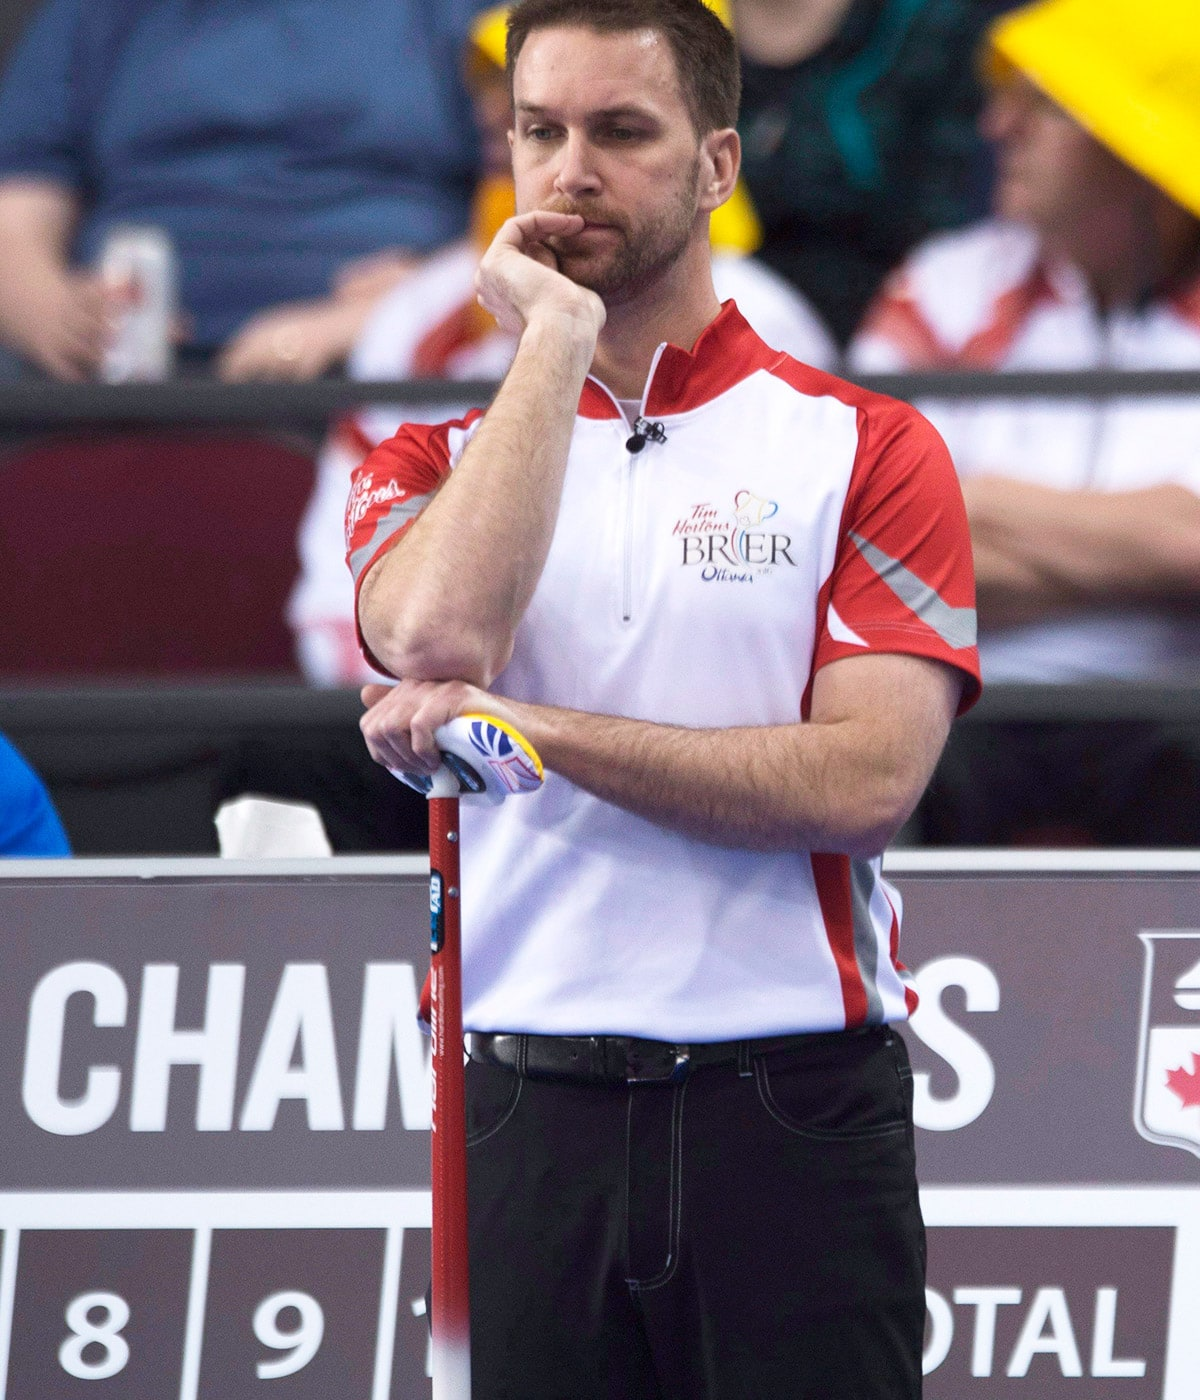 For 8 months, Brad Gushue didn't know when he'd throw another rock